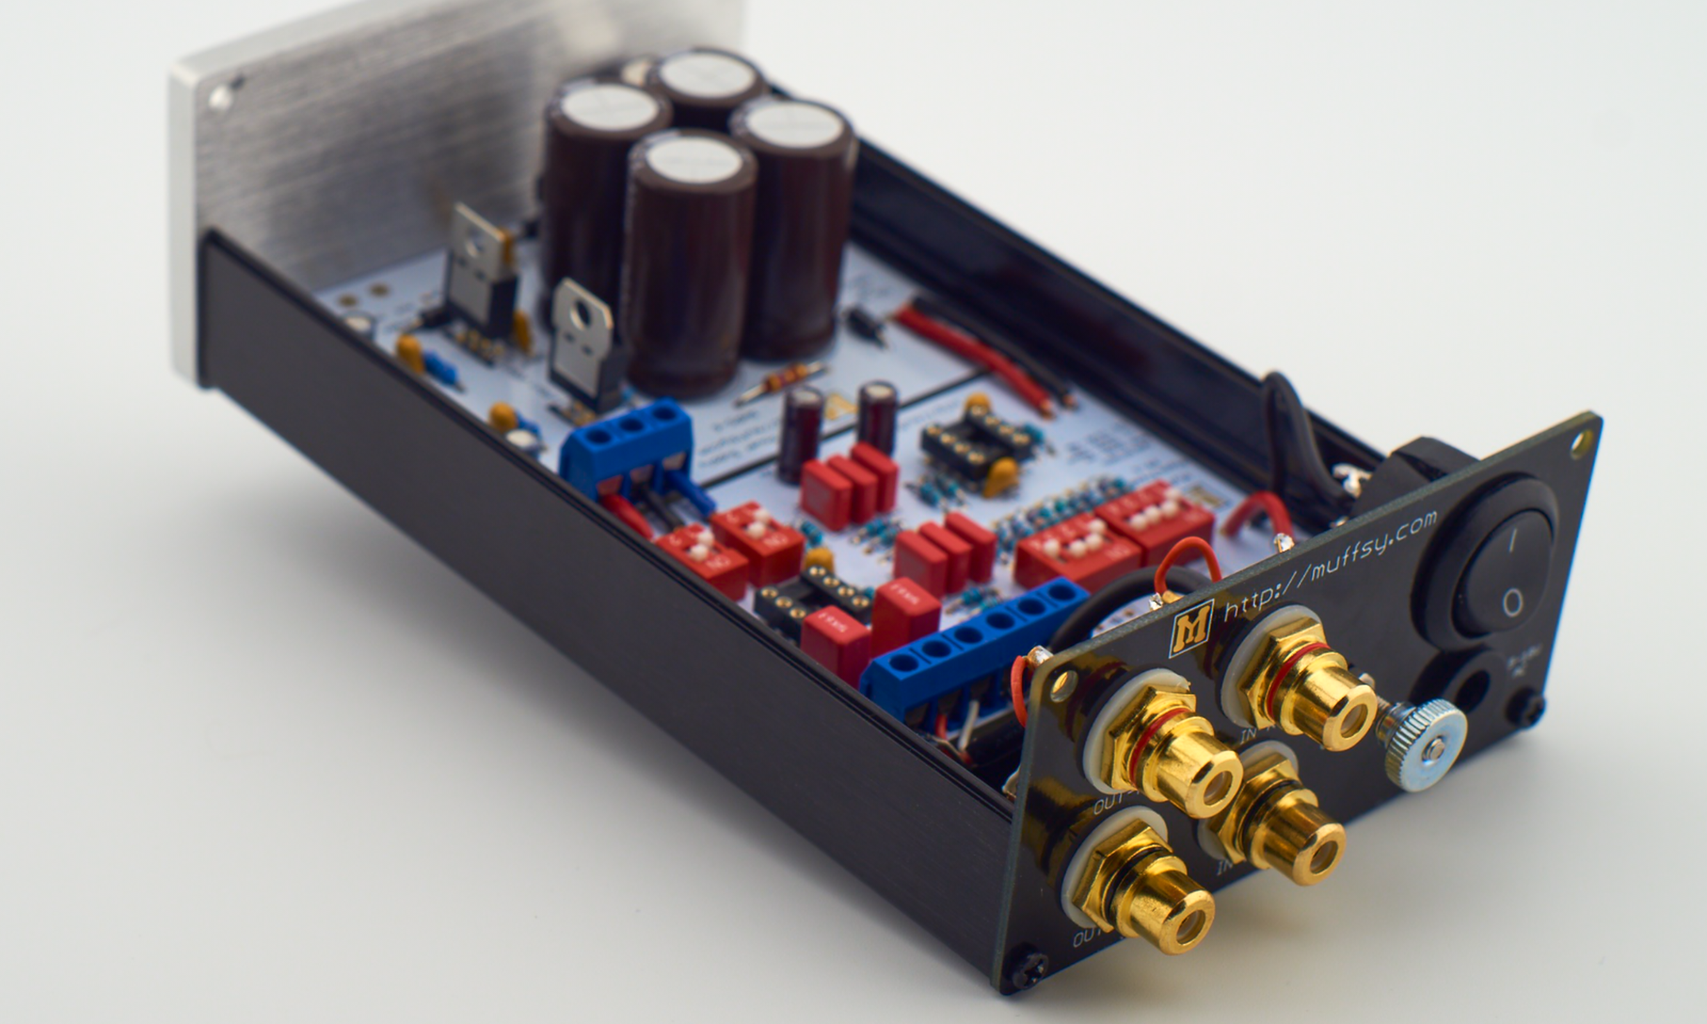 Building the Muffsy Phono Preamp PP-2